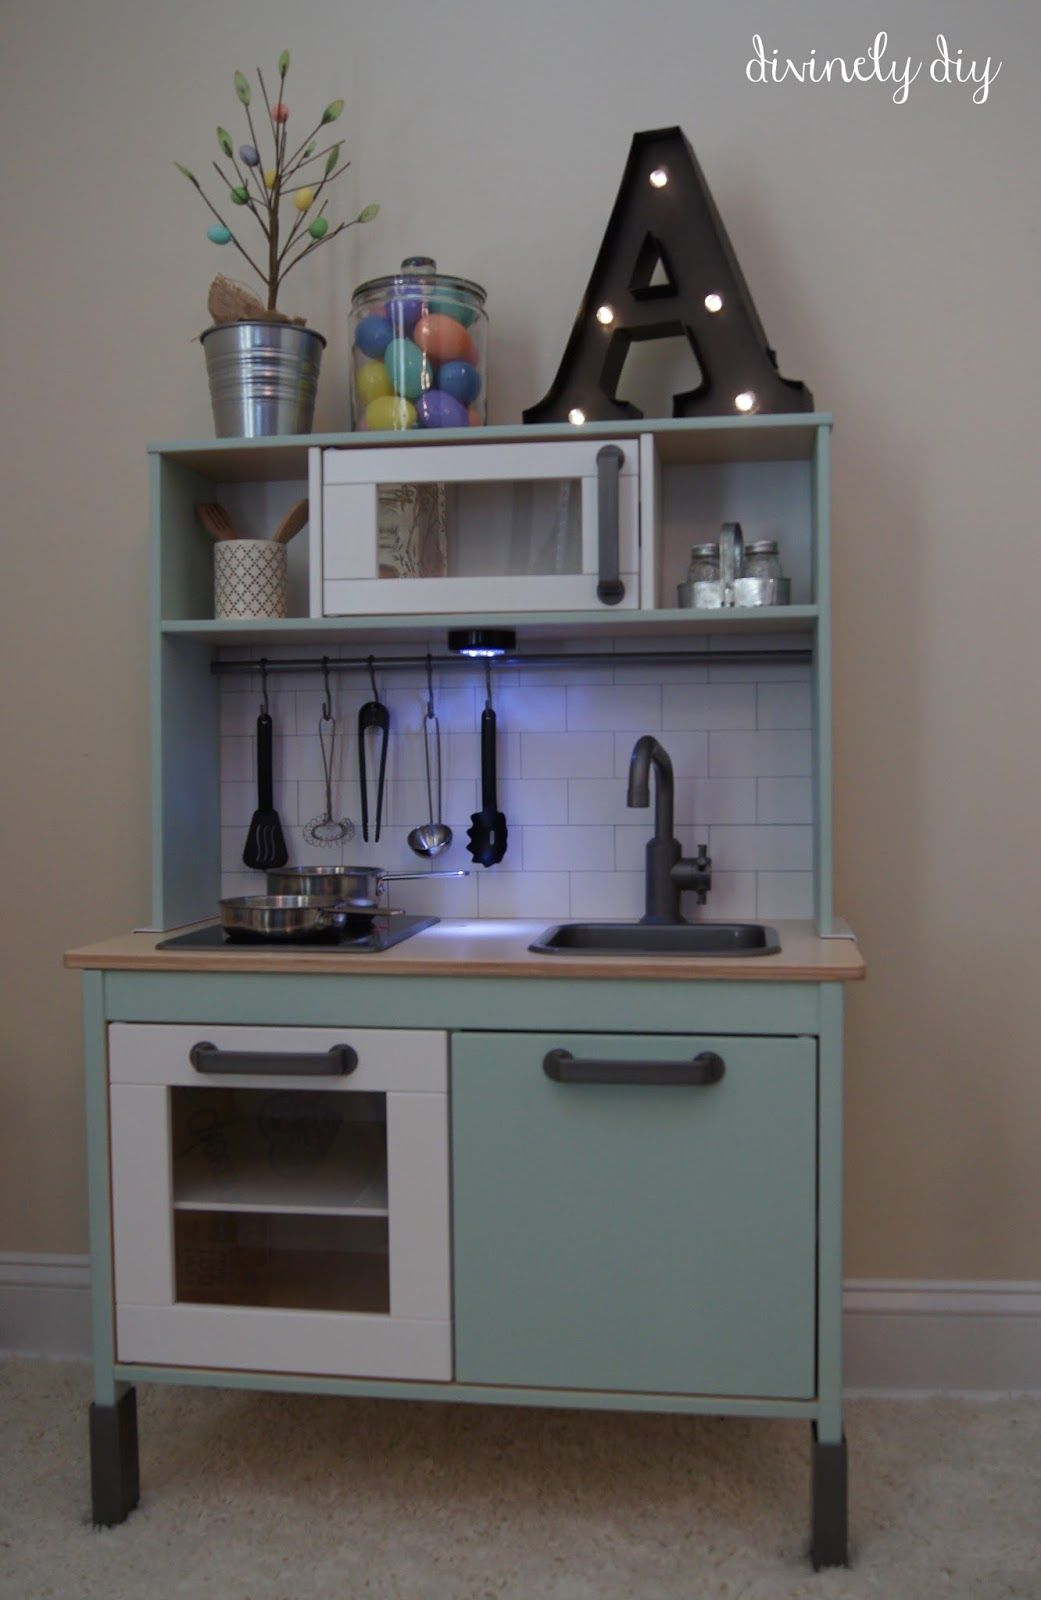 Cocina Juguete Ikea Ikea Duktig Play Kitchen Makeover Cubby House Play House Tree